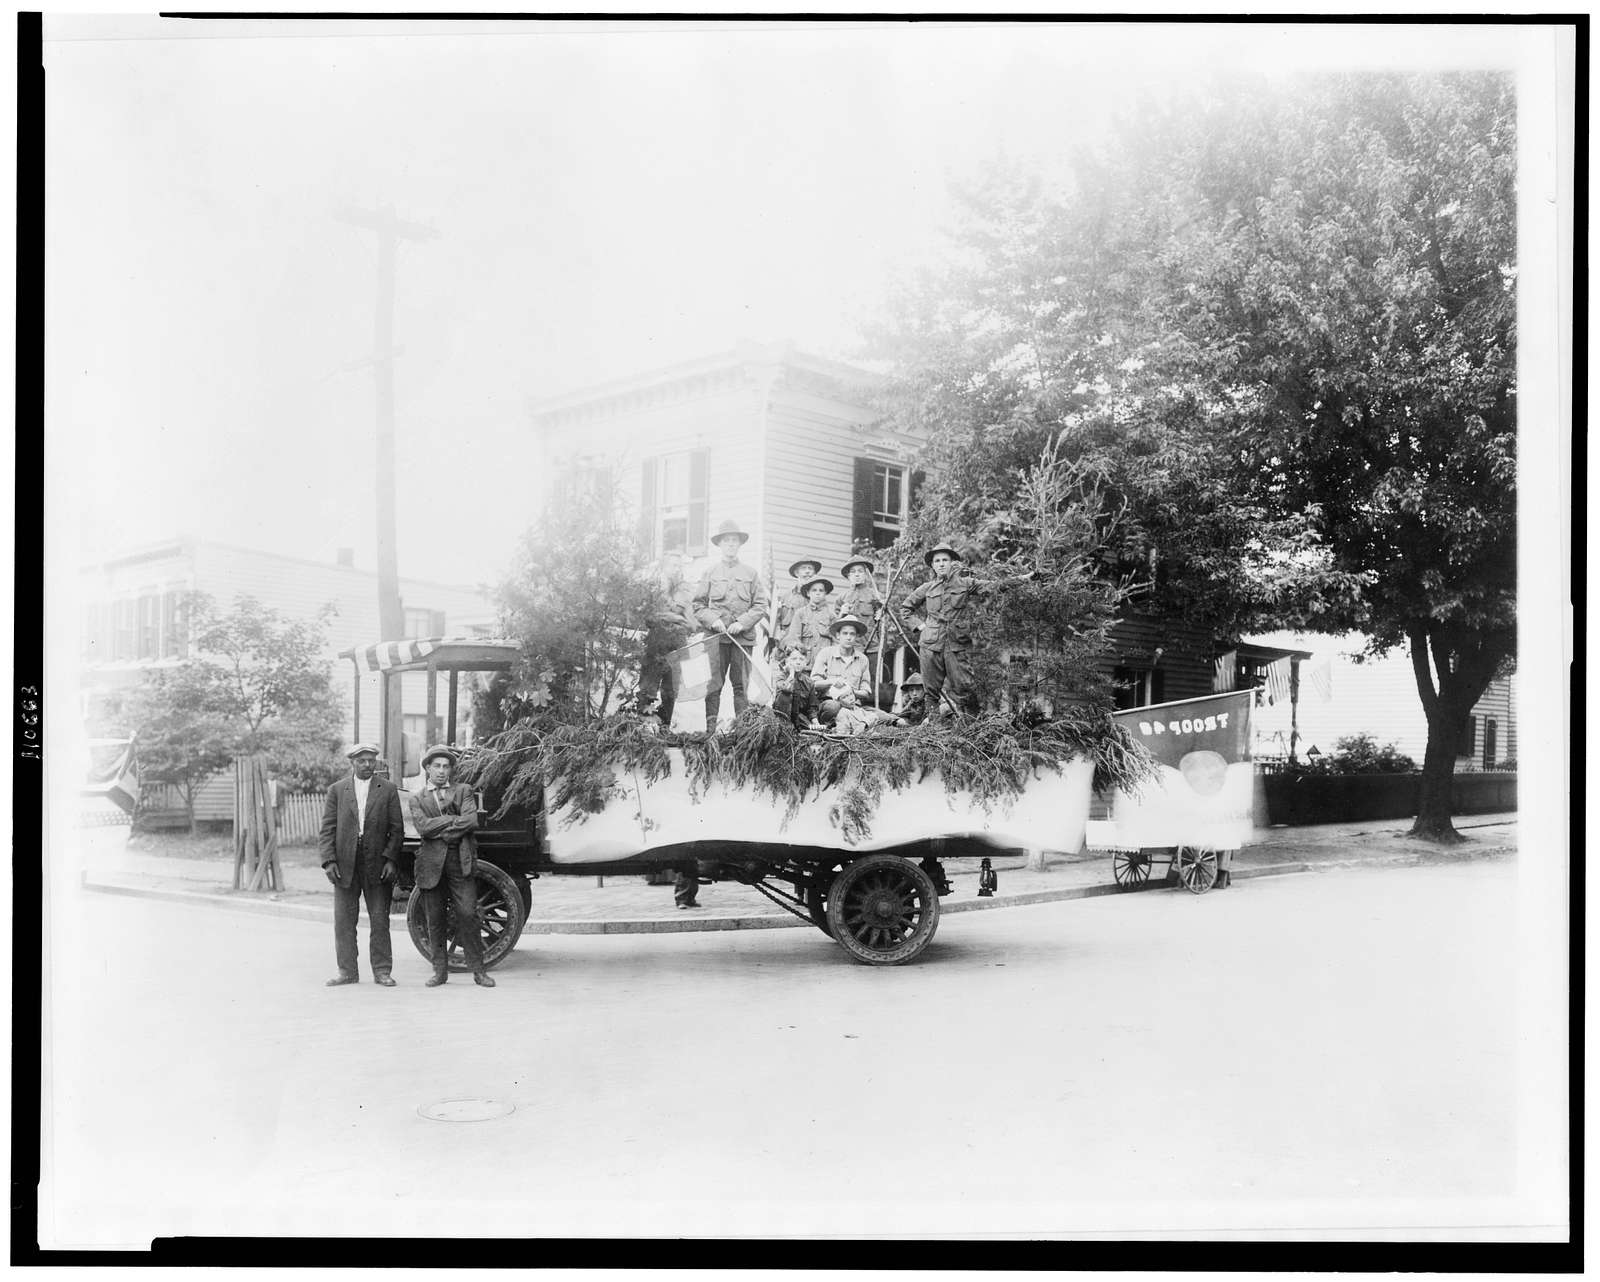 [Boy Scouts posed with a truck decorated for a parade, probably in the Anacostia section of Washington, D.C.]